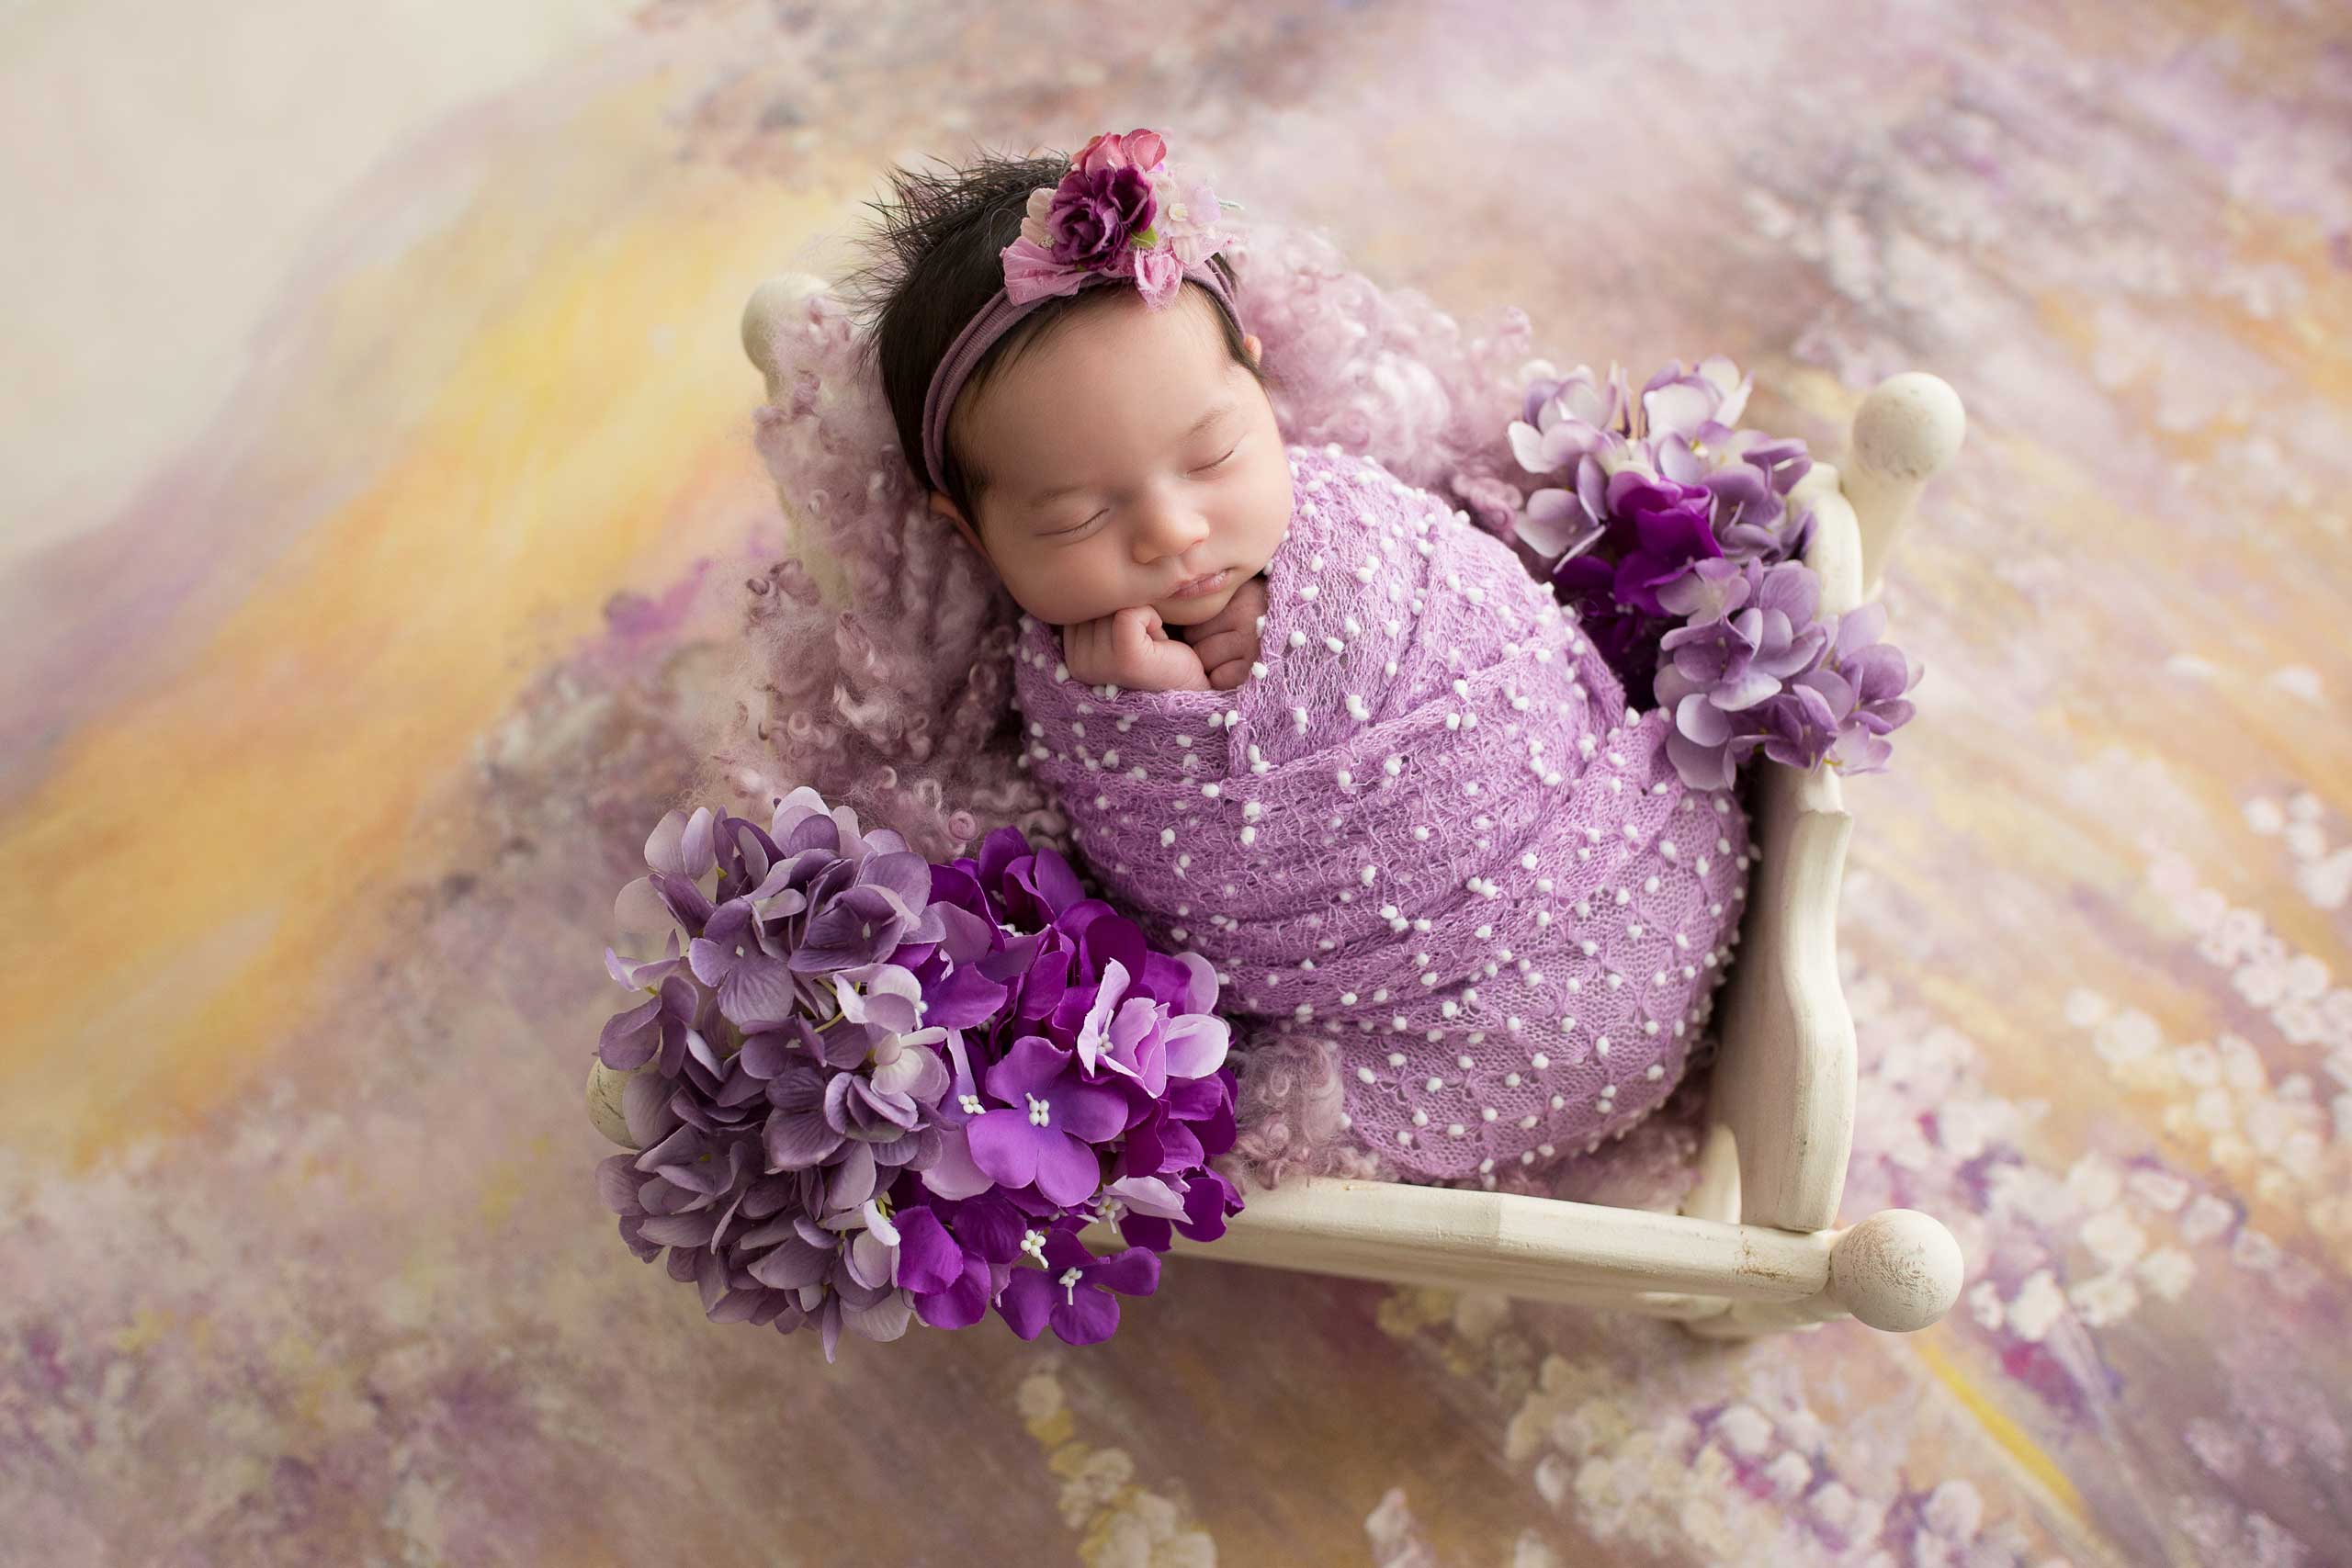 newborn photo session taken by Ramina Magid Photography in Los Angeles